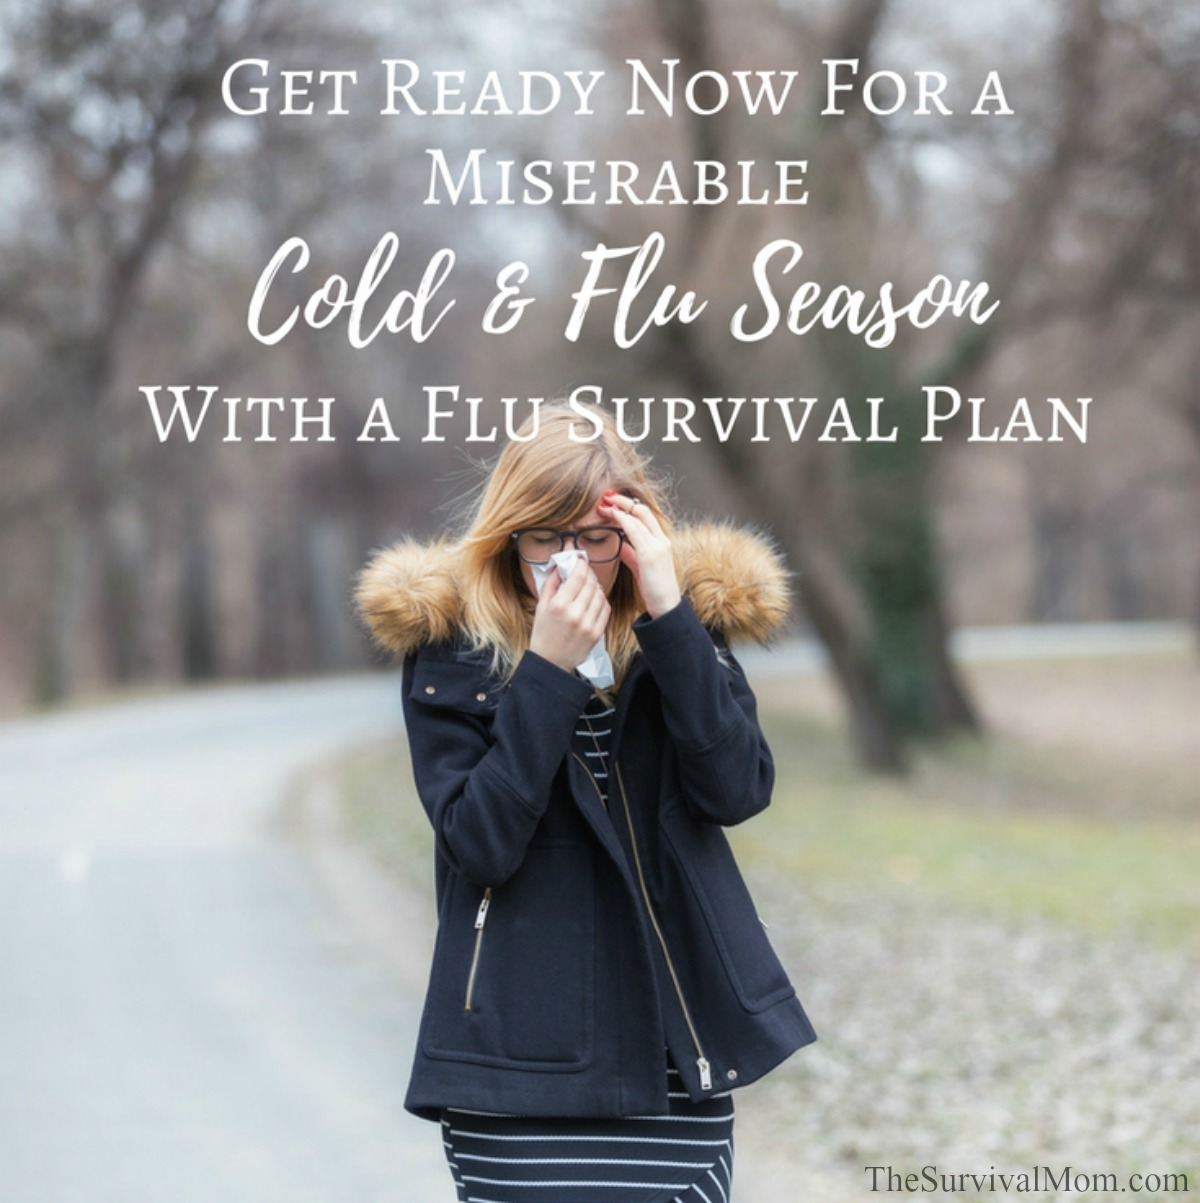 Get Ready For a Miserable Cold & Flu Season With a Flu Survival Plan via The Survival Mom